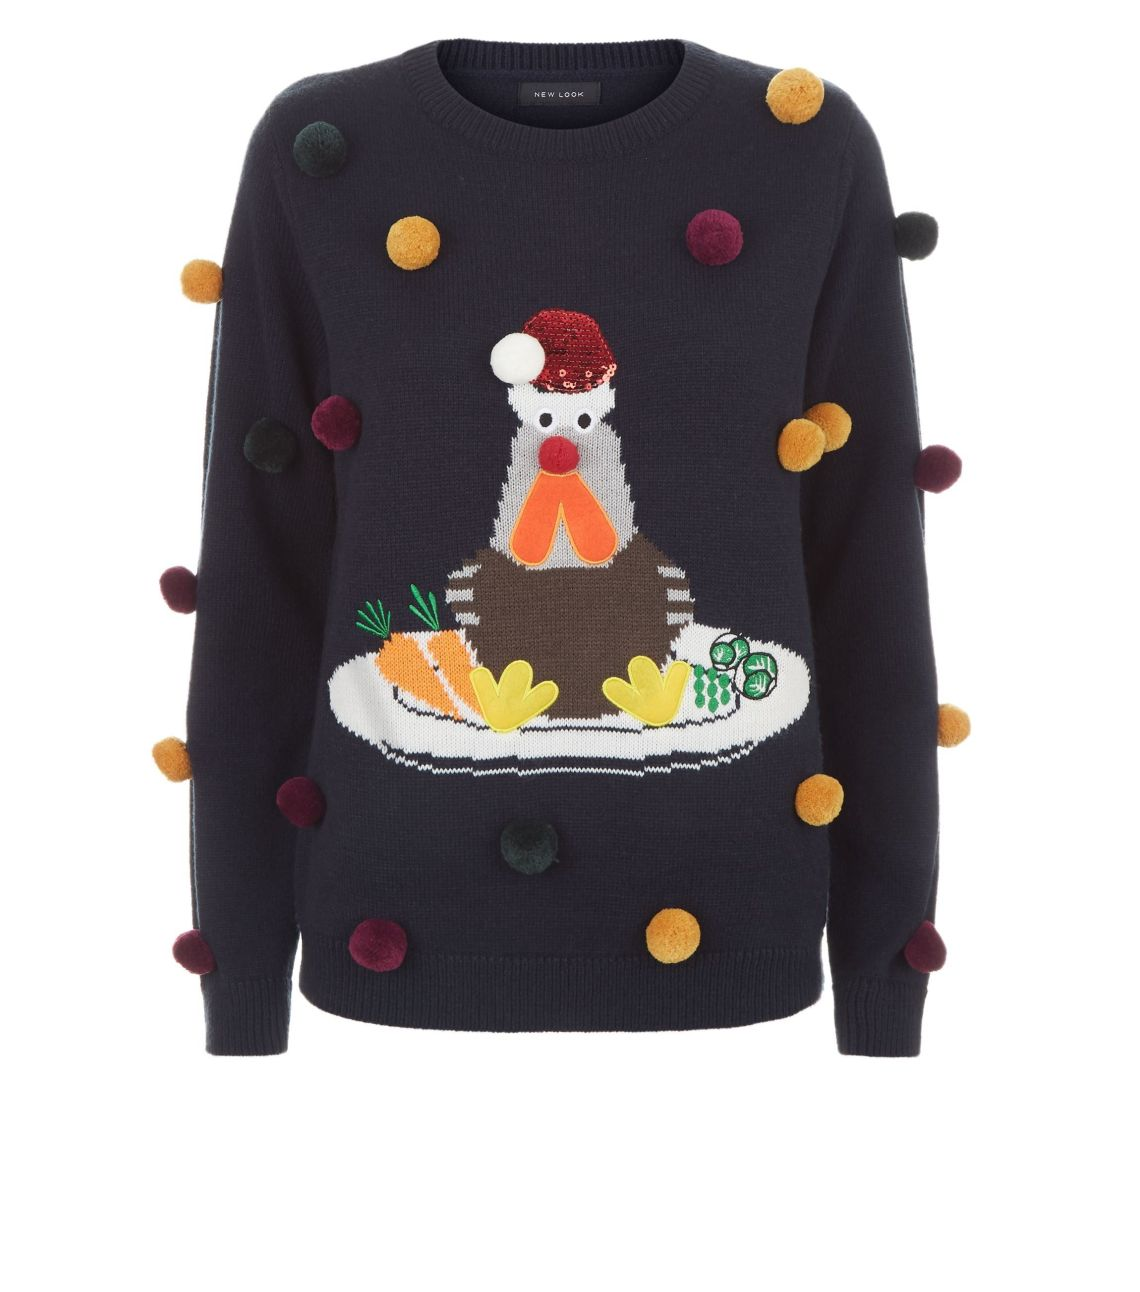 This turkey jumper has won Christmas. Not suitable for vegetarians.New Look, £22.99